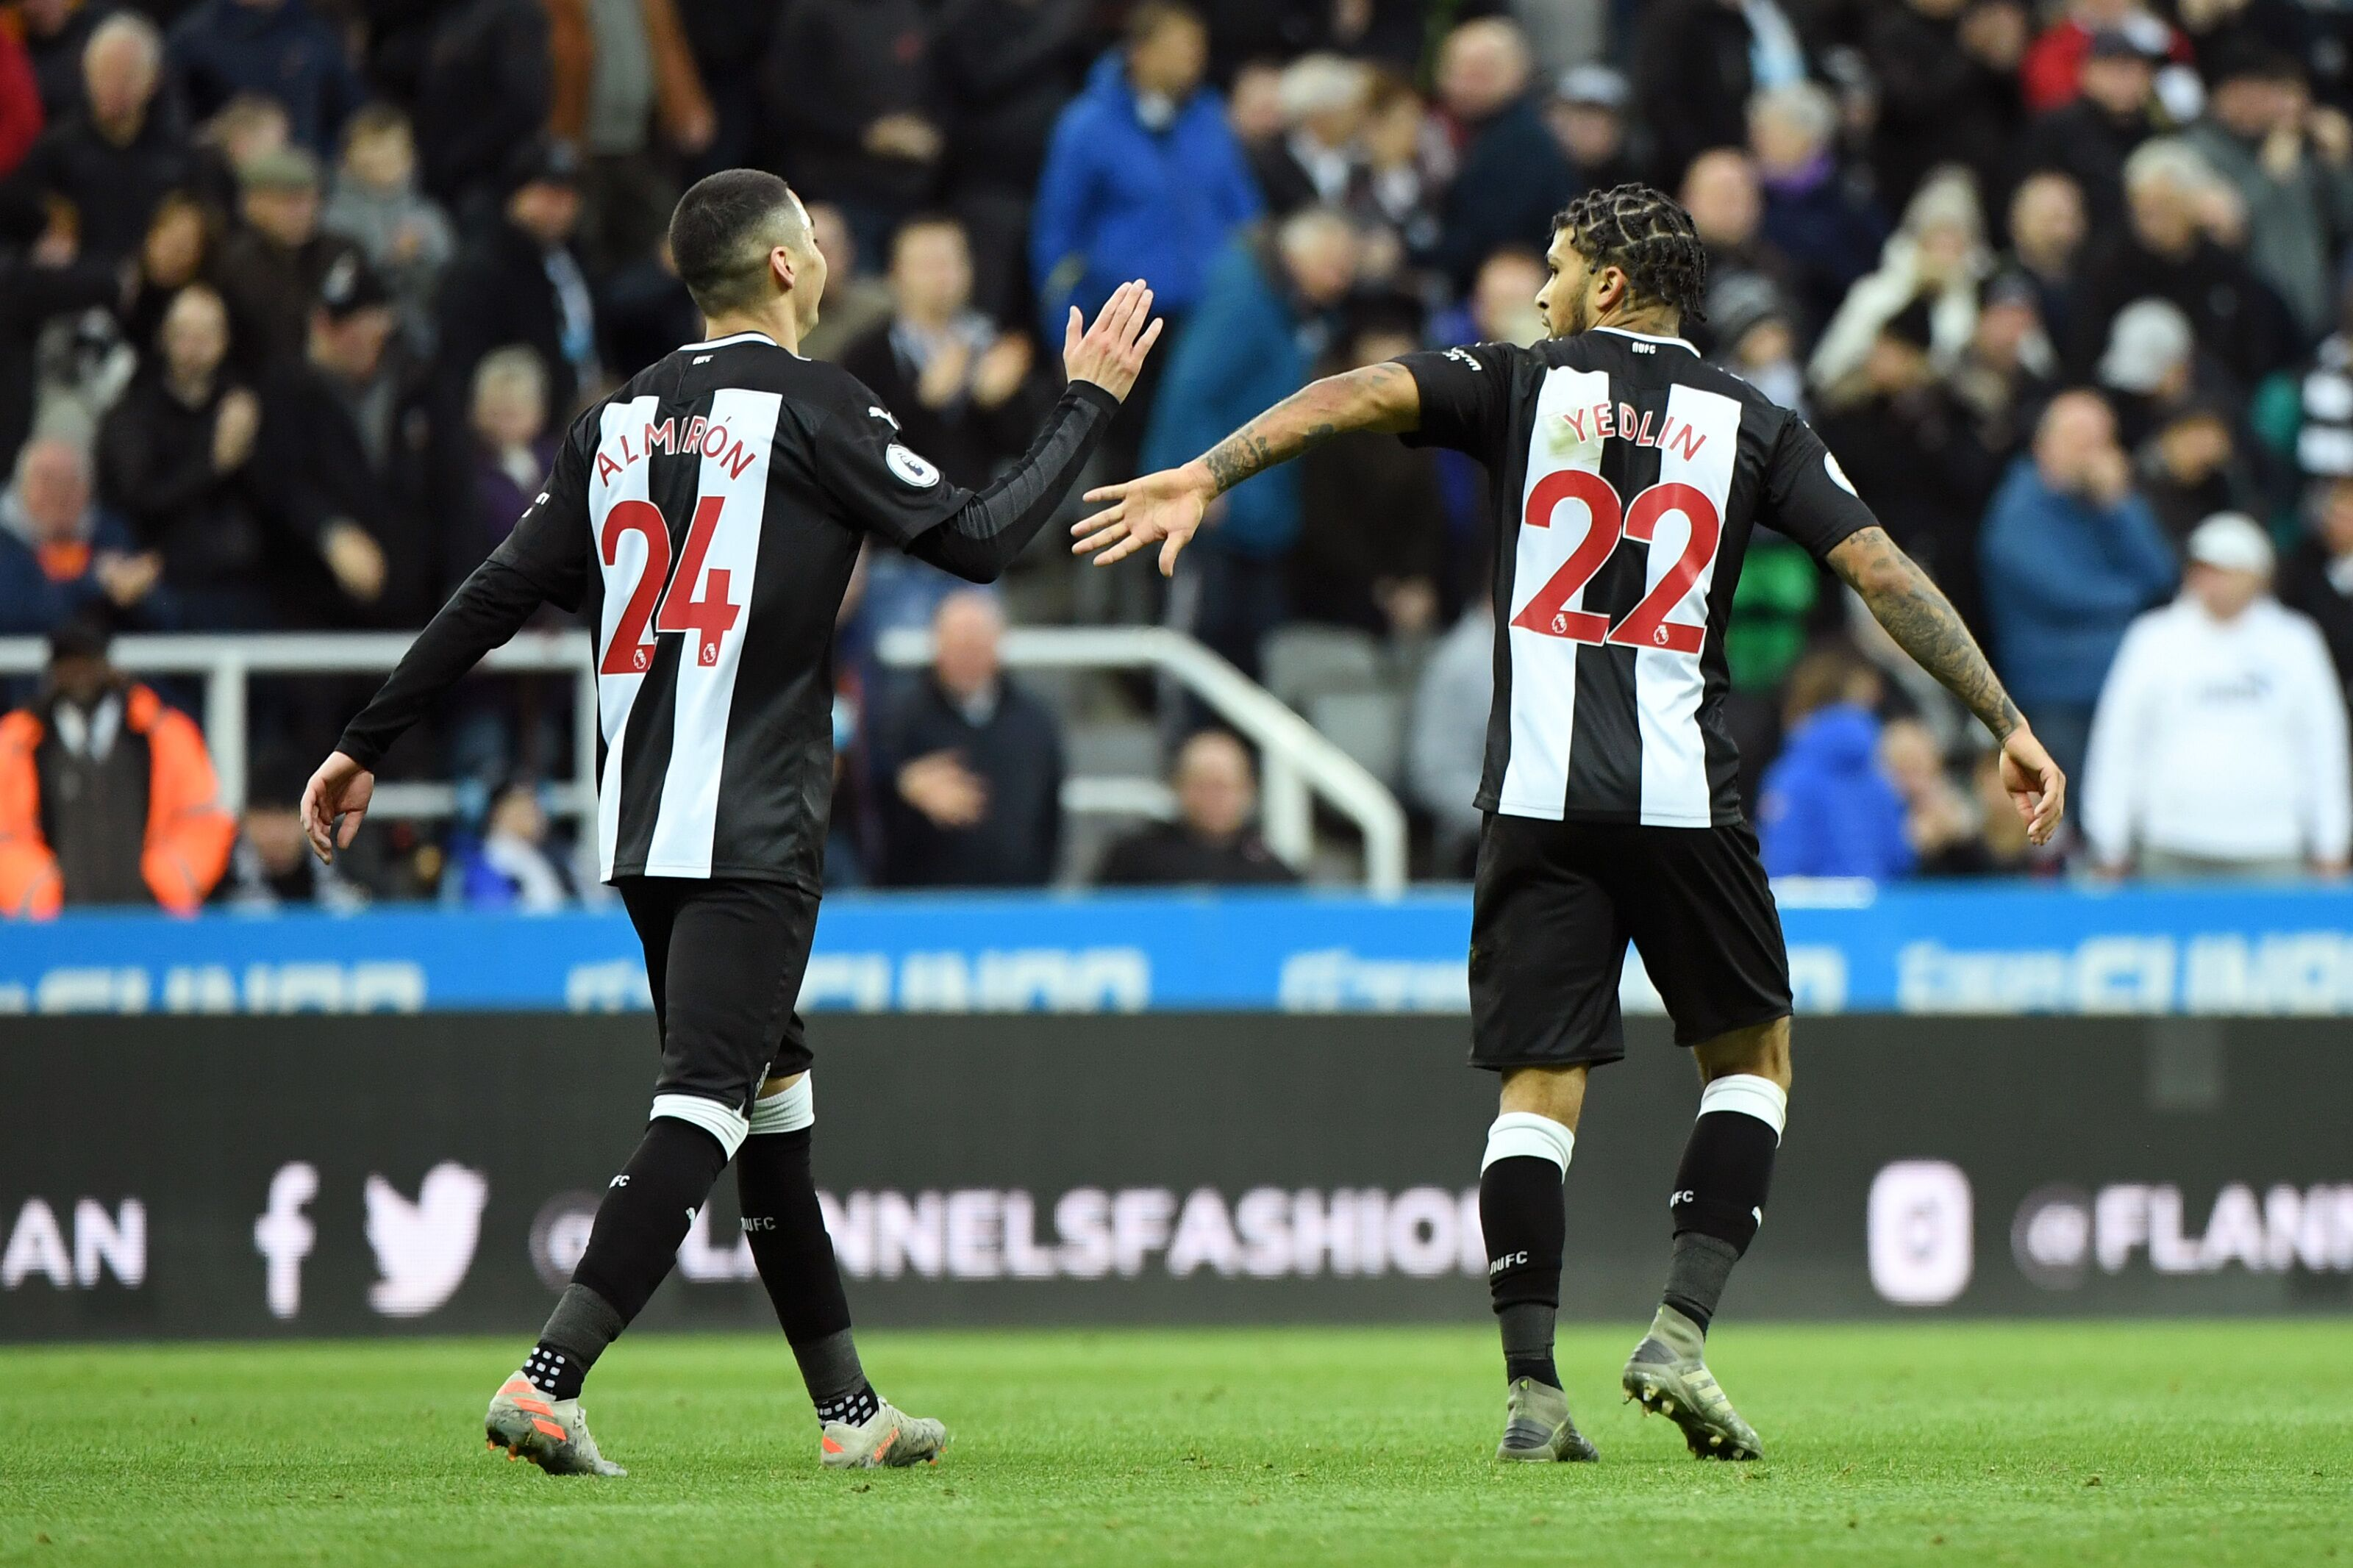 Newcastle's benefiting from quality partnerships on both flanks